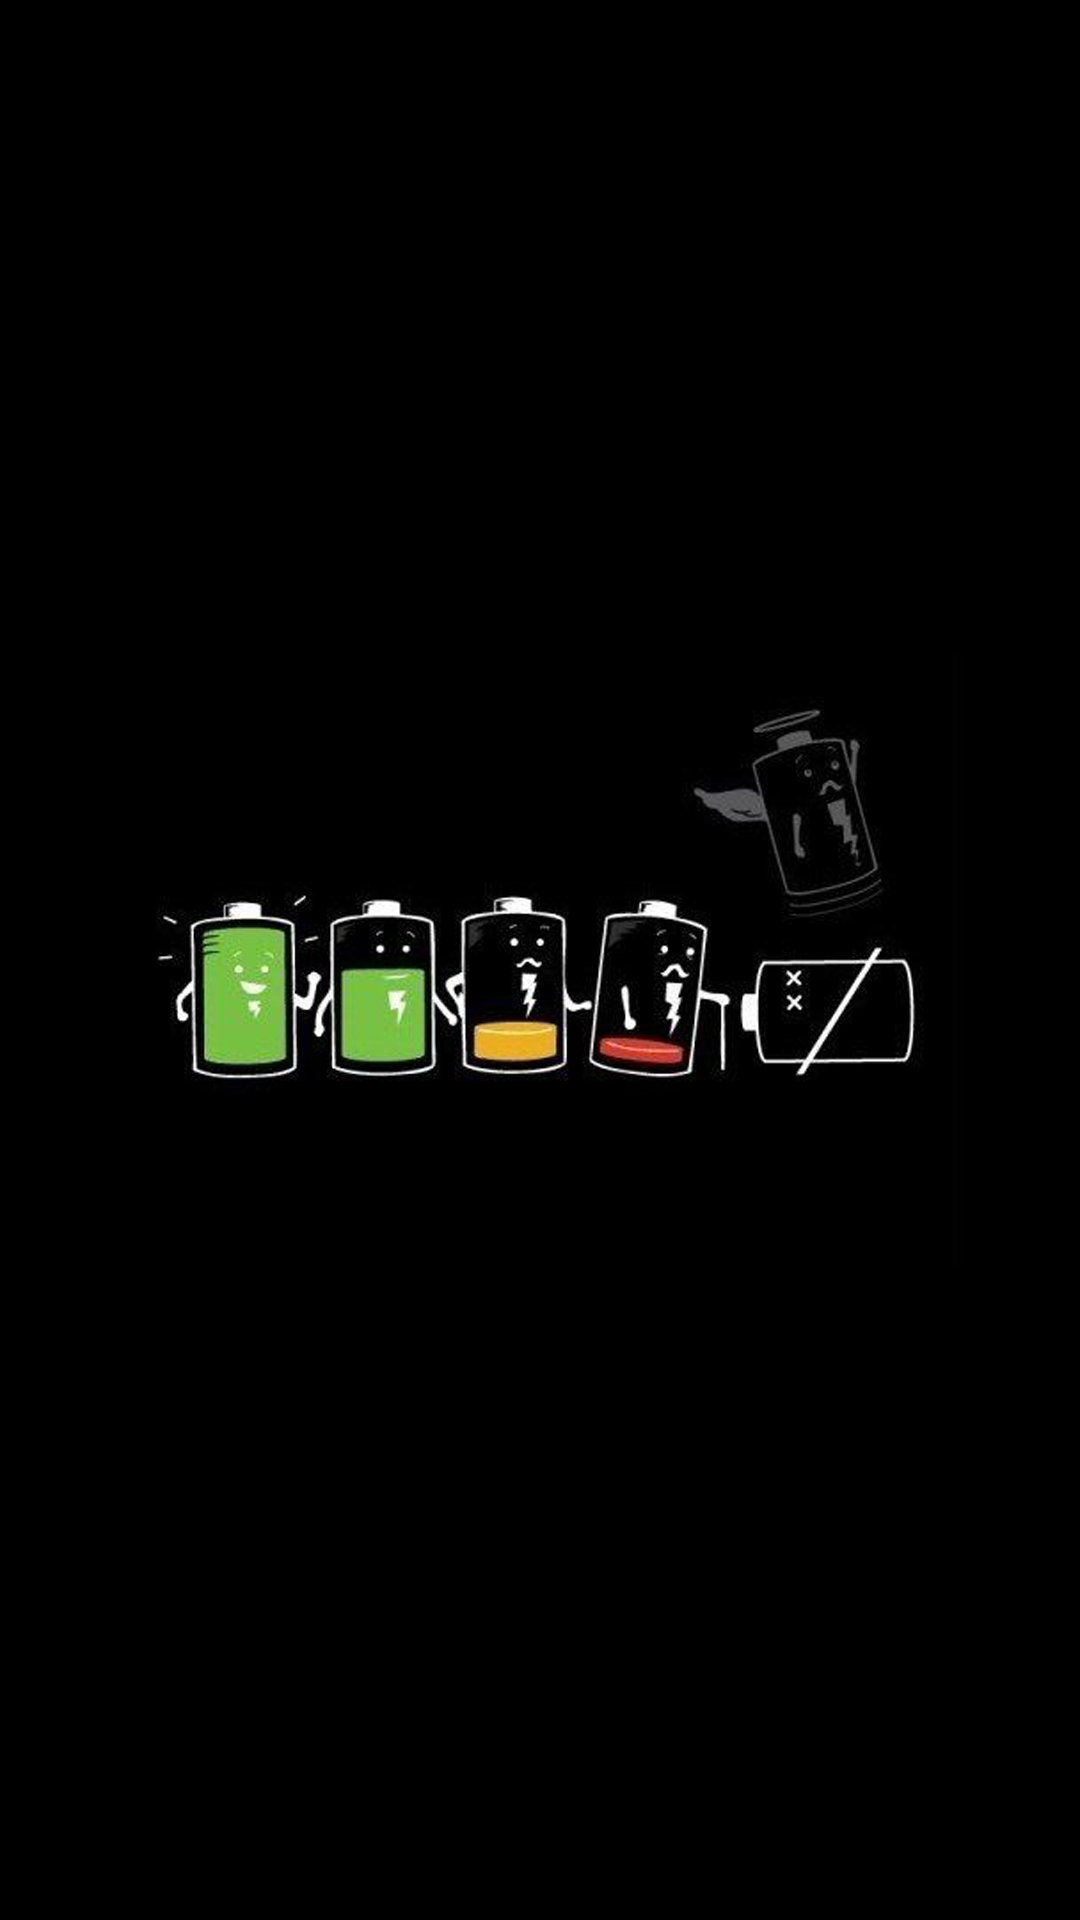 Battery Life Cycle Wallpaper